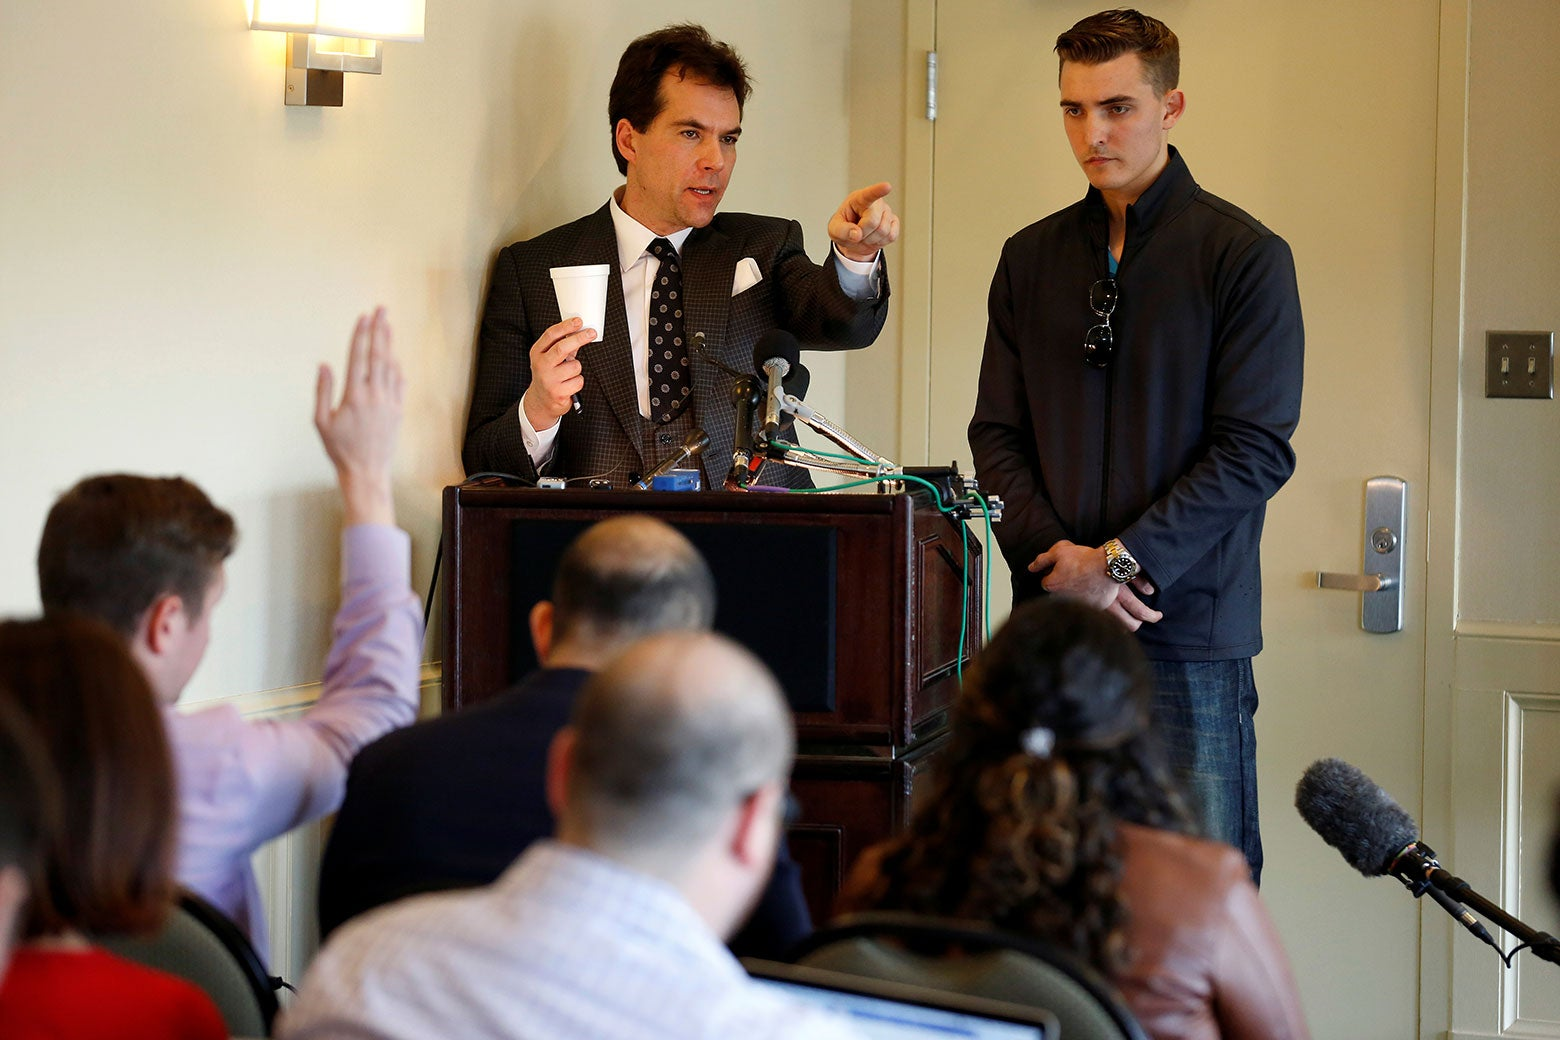 Jack Burkman and Jacob Wohl at a news conference